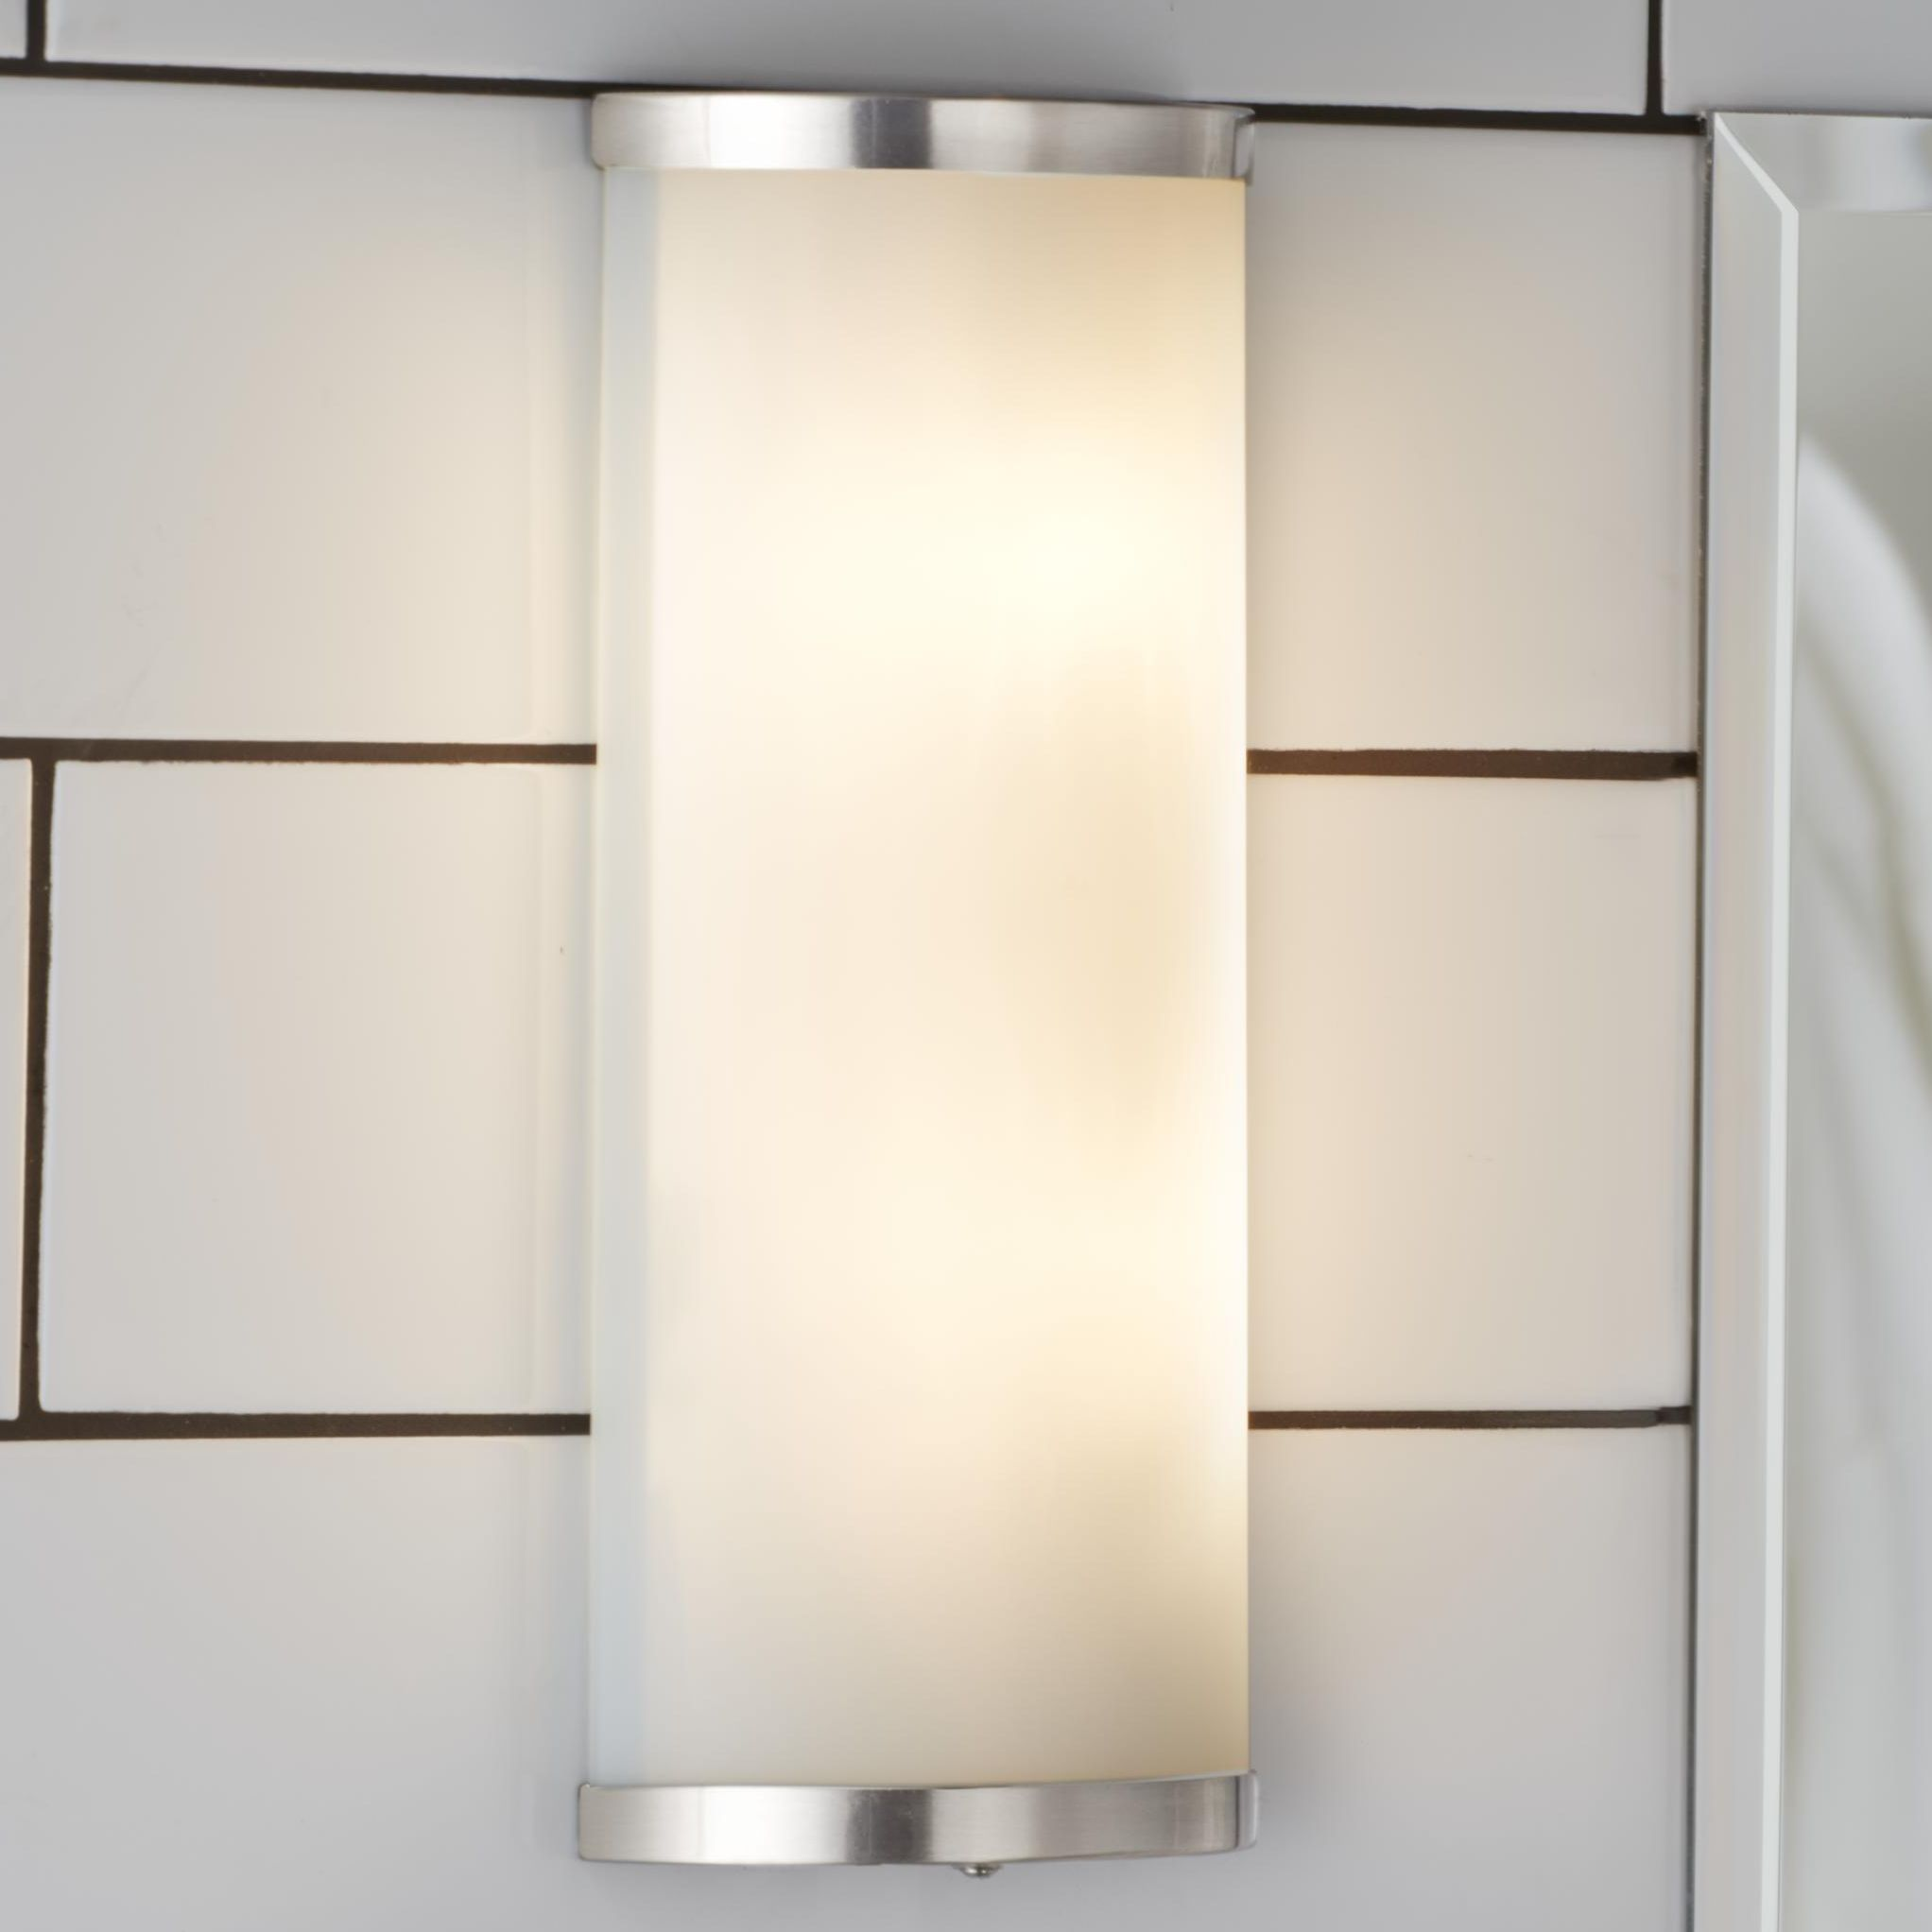 Bathroom Lighting B&Q bathroom lights | bathroom wall & ceiling lights | diy at b&q